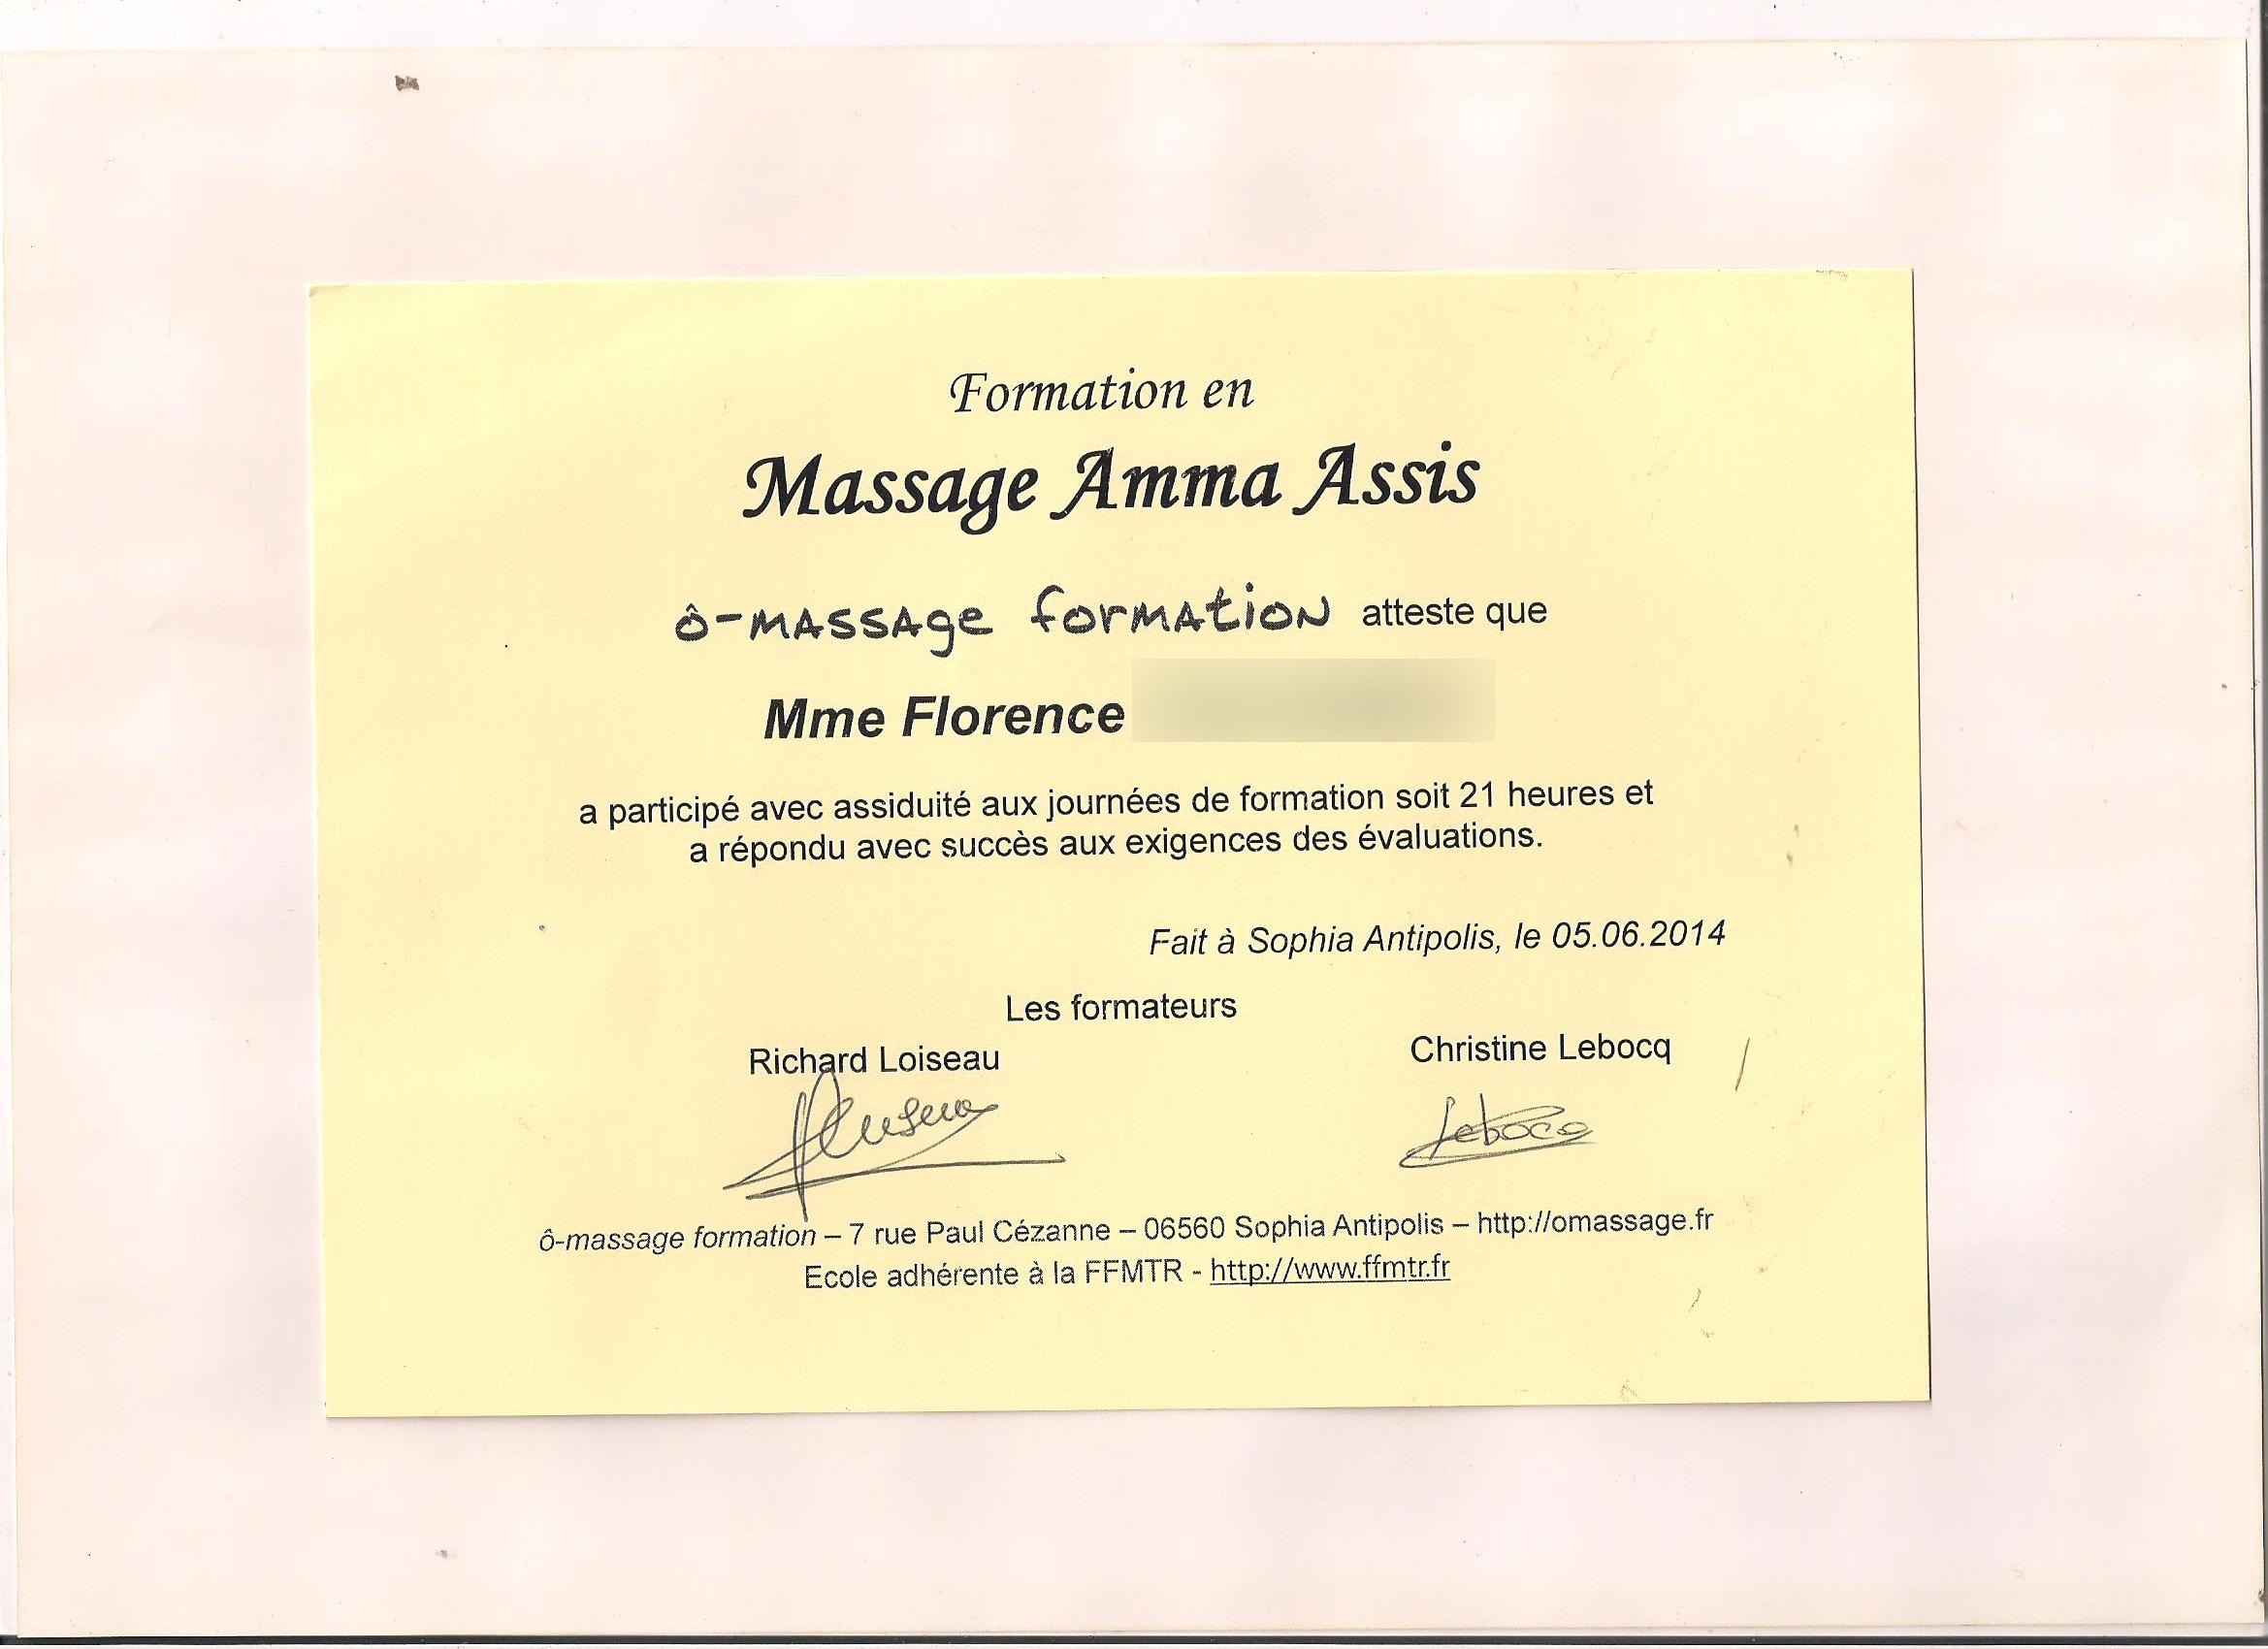 5761a712c98c6_certificat massage assis 001.jpg